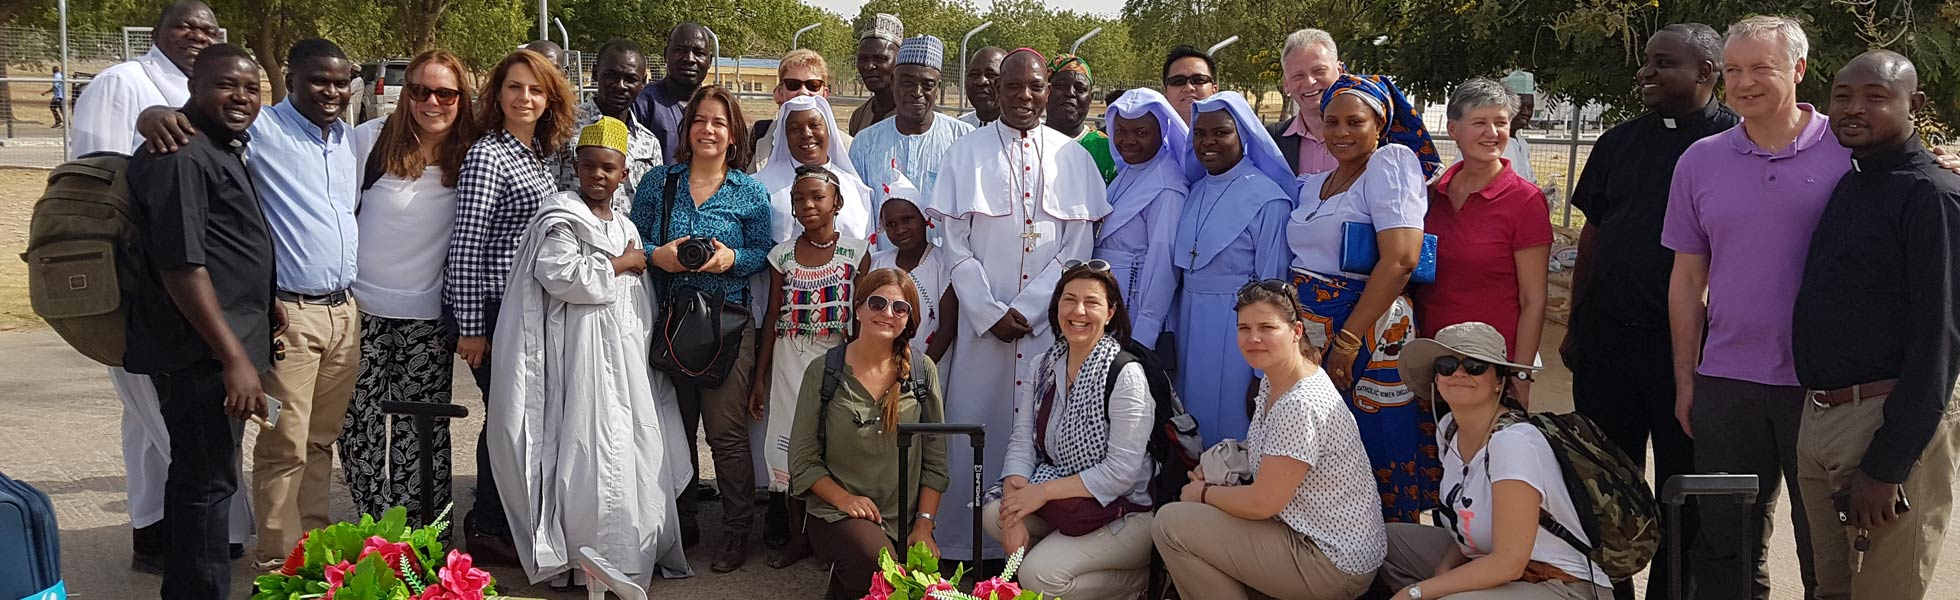 ACN delegation visits the dioceses most seriously affected by Boko Haram in Nigeria